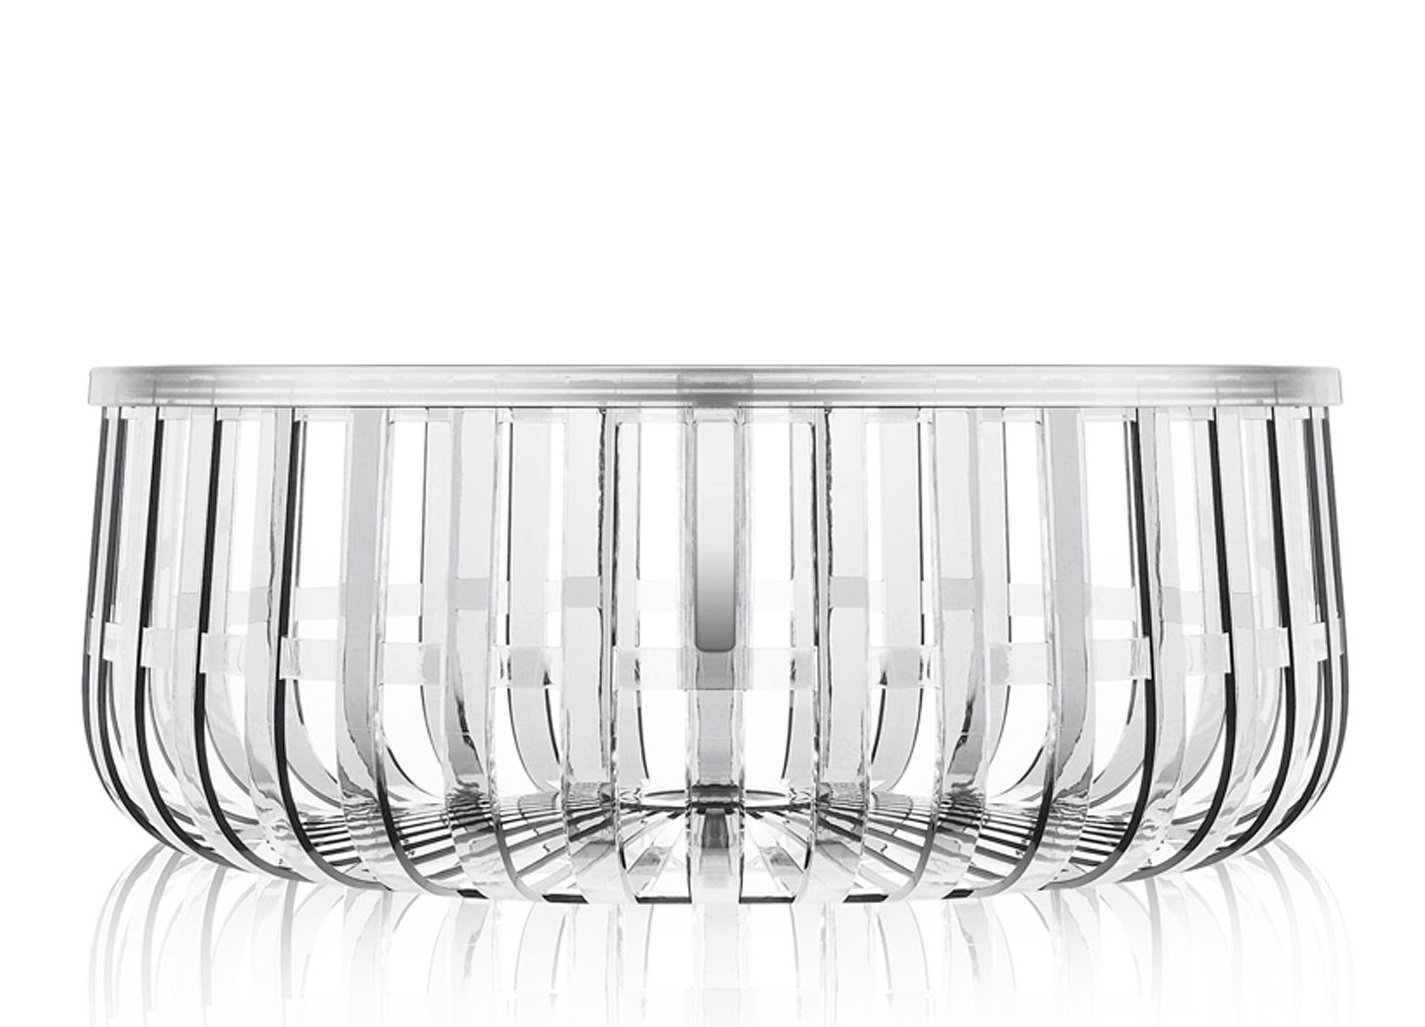 Panier Coffee Table from Kartell, designed by Ronan and Erwan Bouroullec